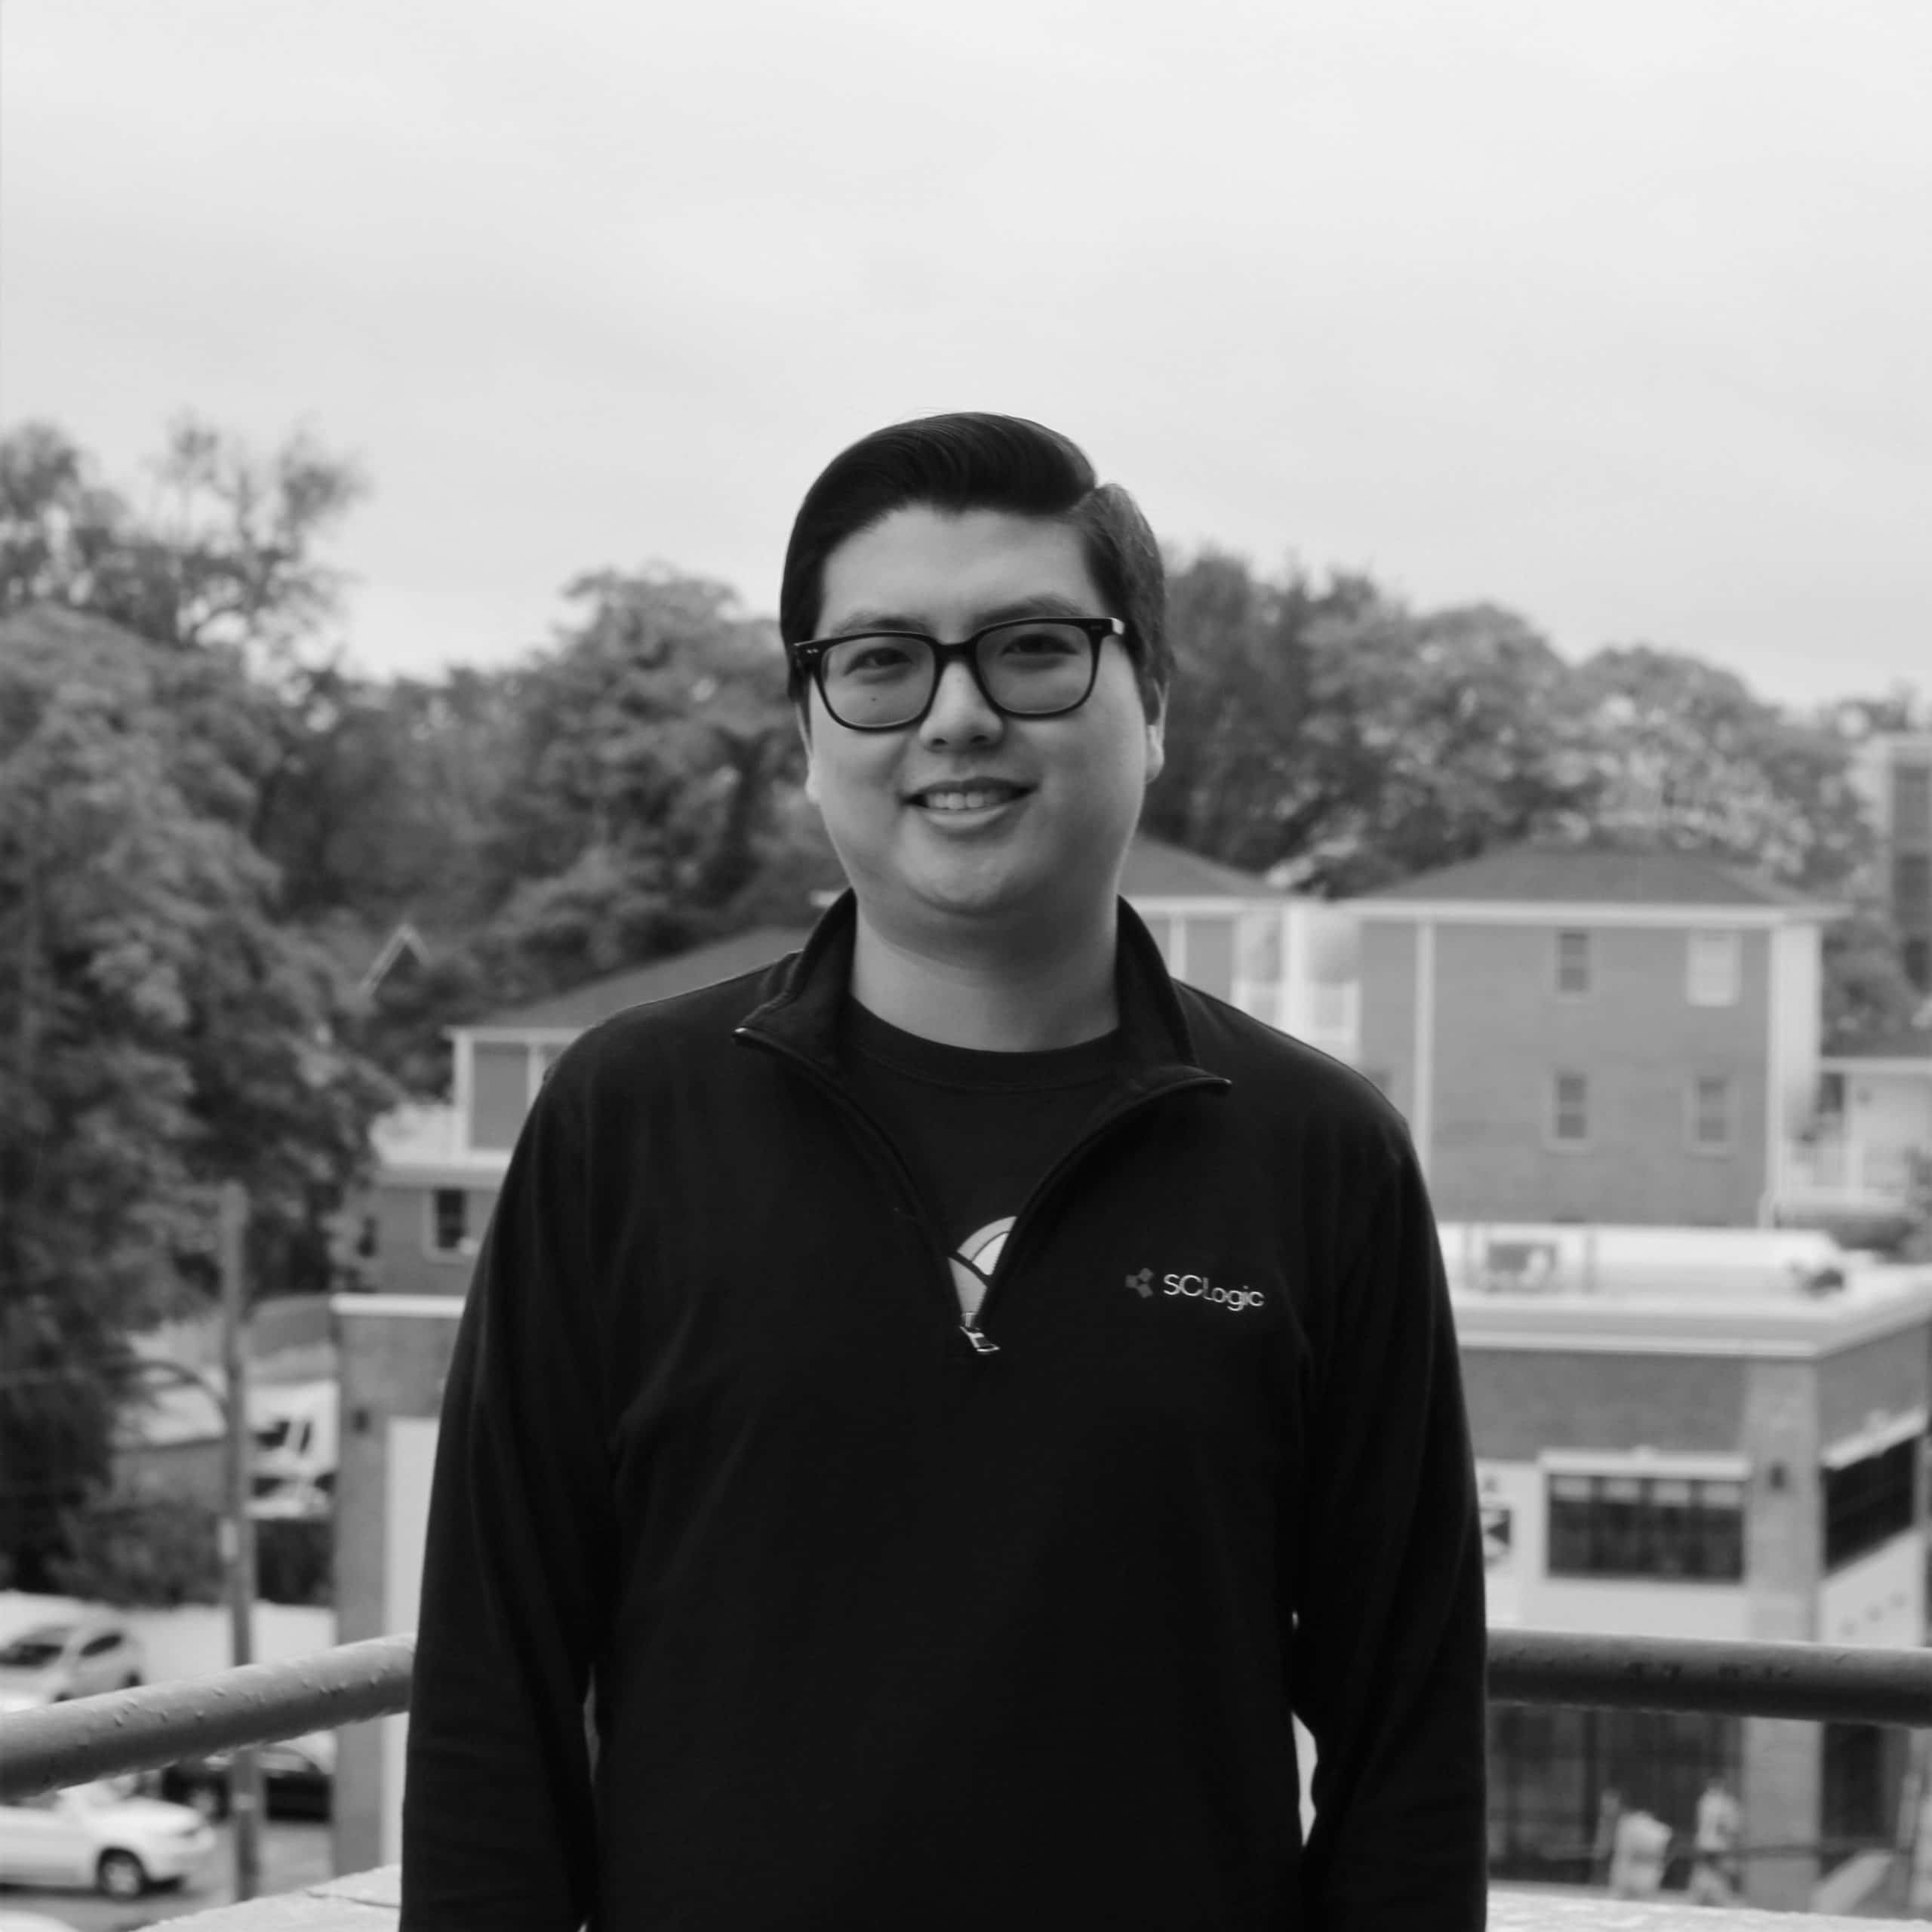 Headshot of David Ahn, Technical Services Analyst for SCLogic.